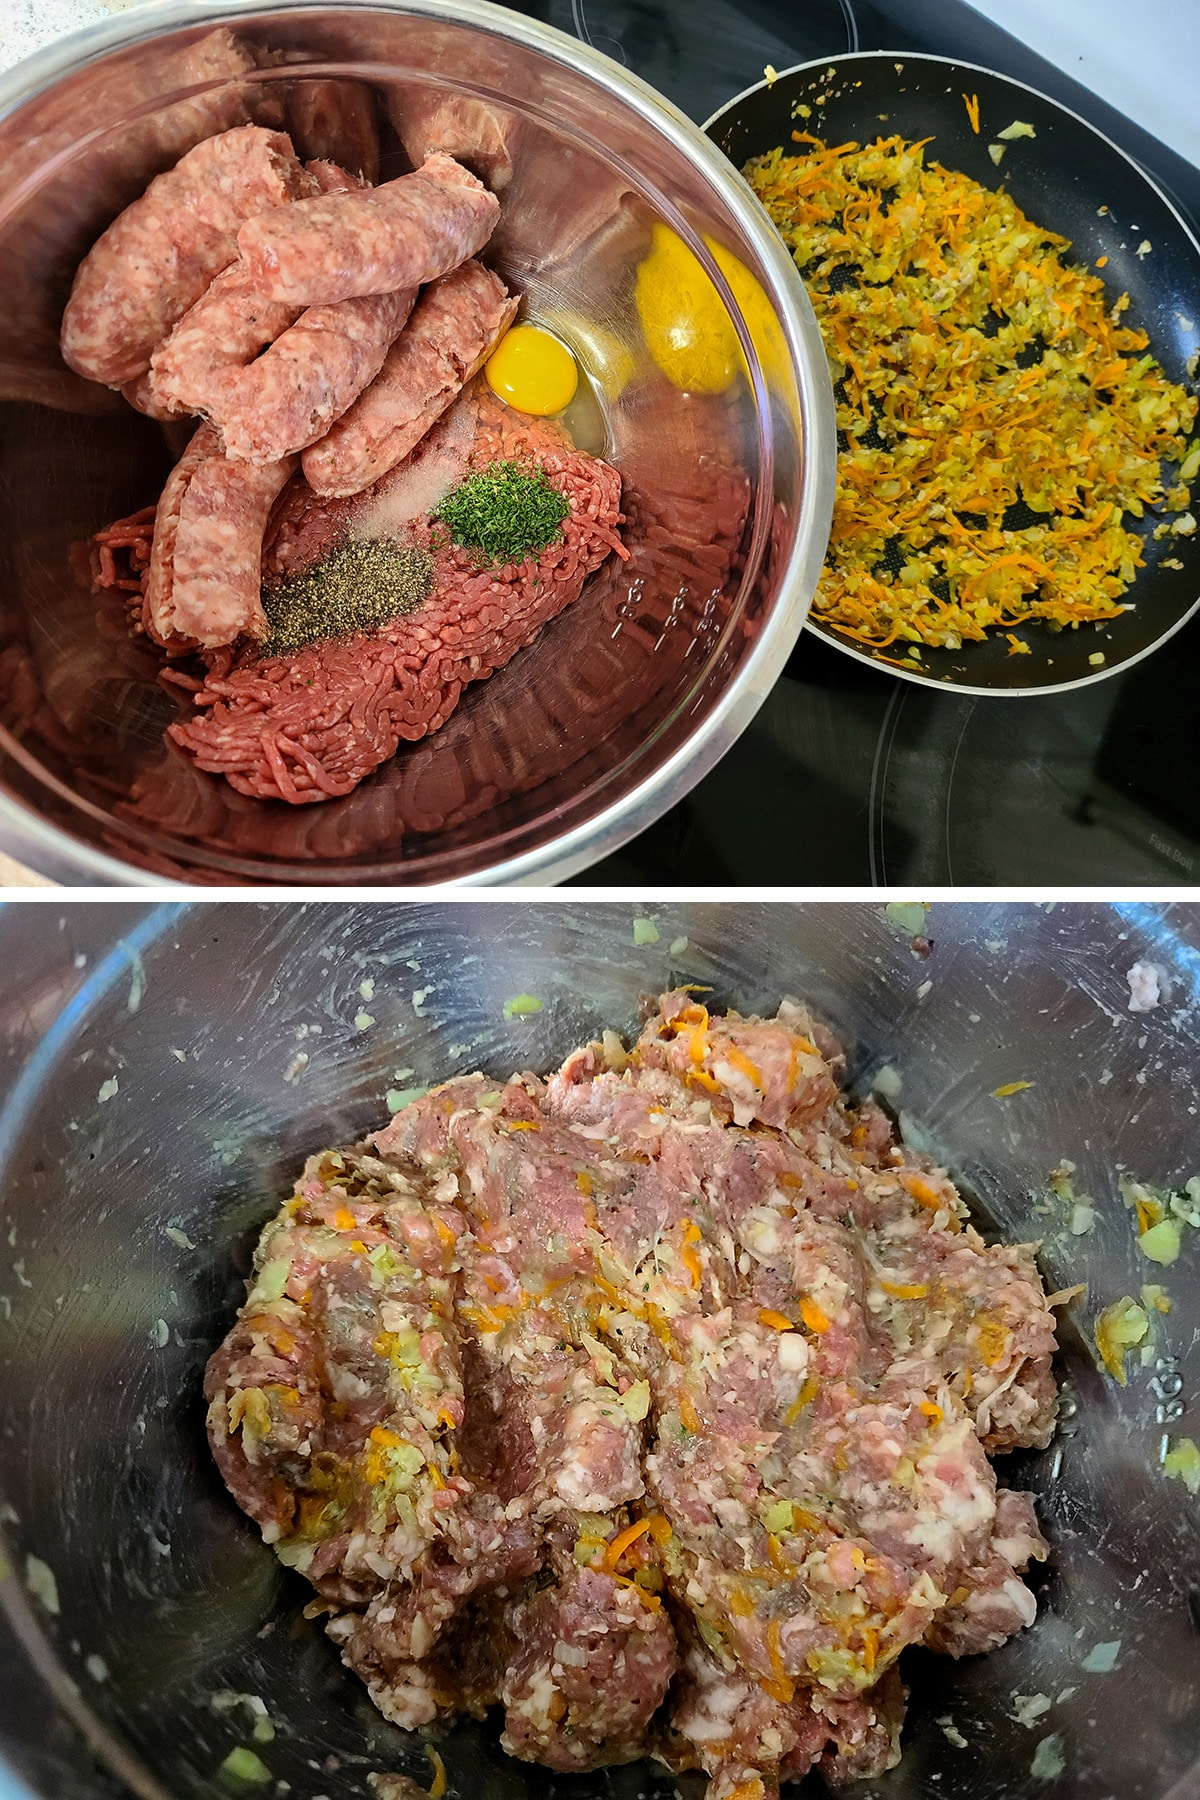 A bowl of ground beef, Italian sausage, and seasonings, before and after being mixed together.